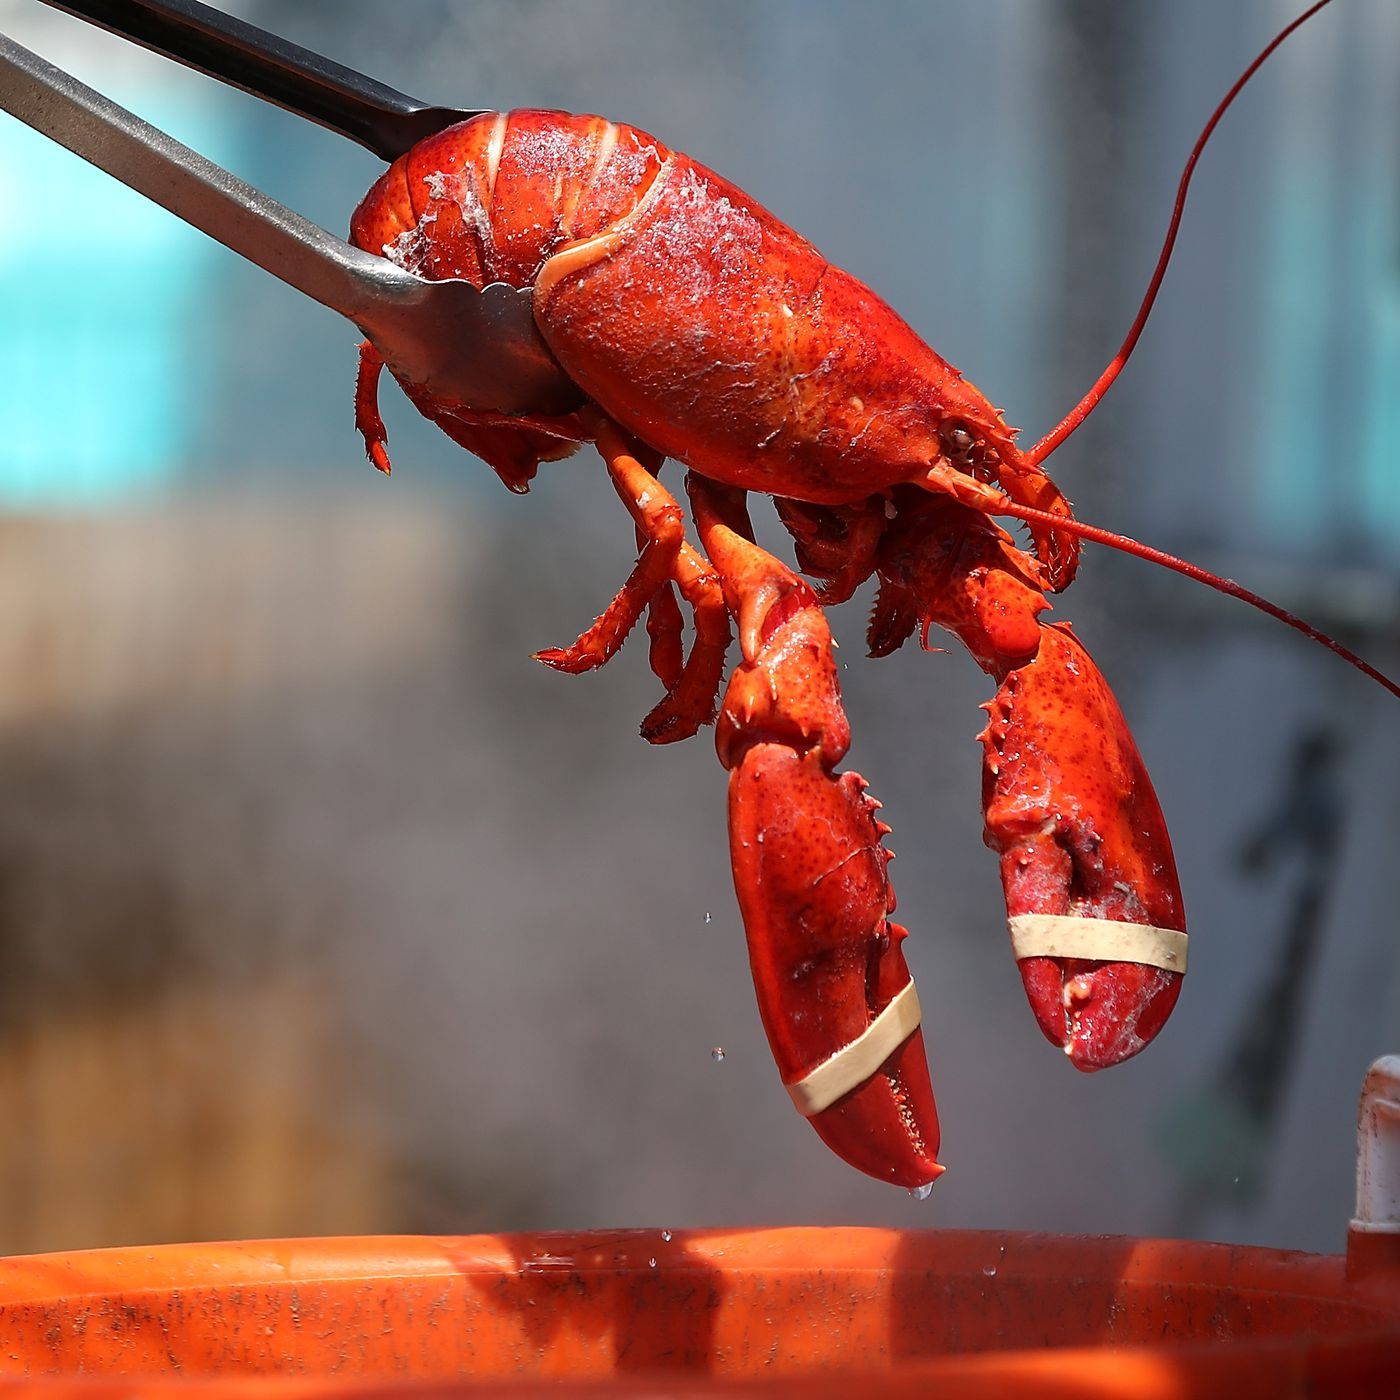 vox.com - Gaby Del Valle - A lobster pound in Maine is getting its lobsters high. Is this ethical?